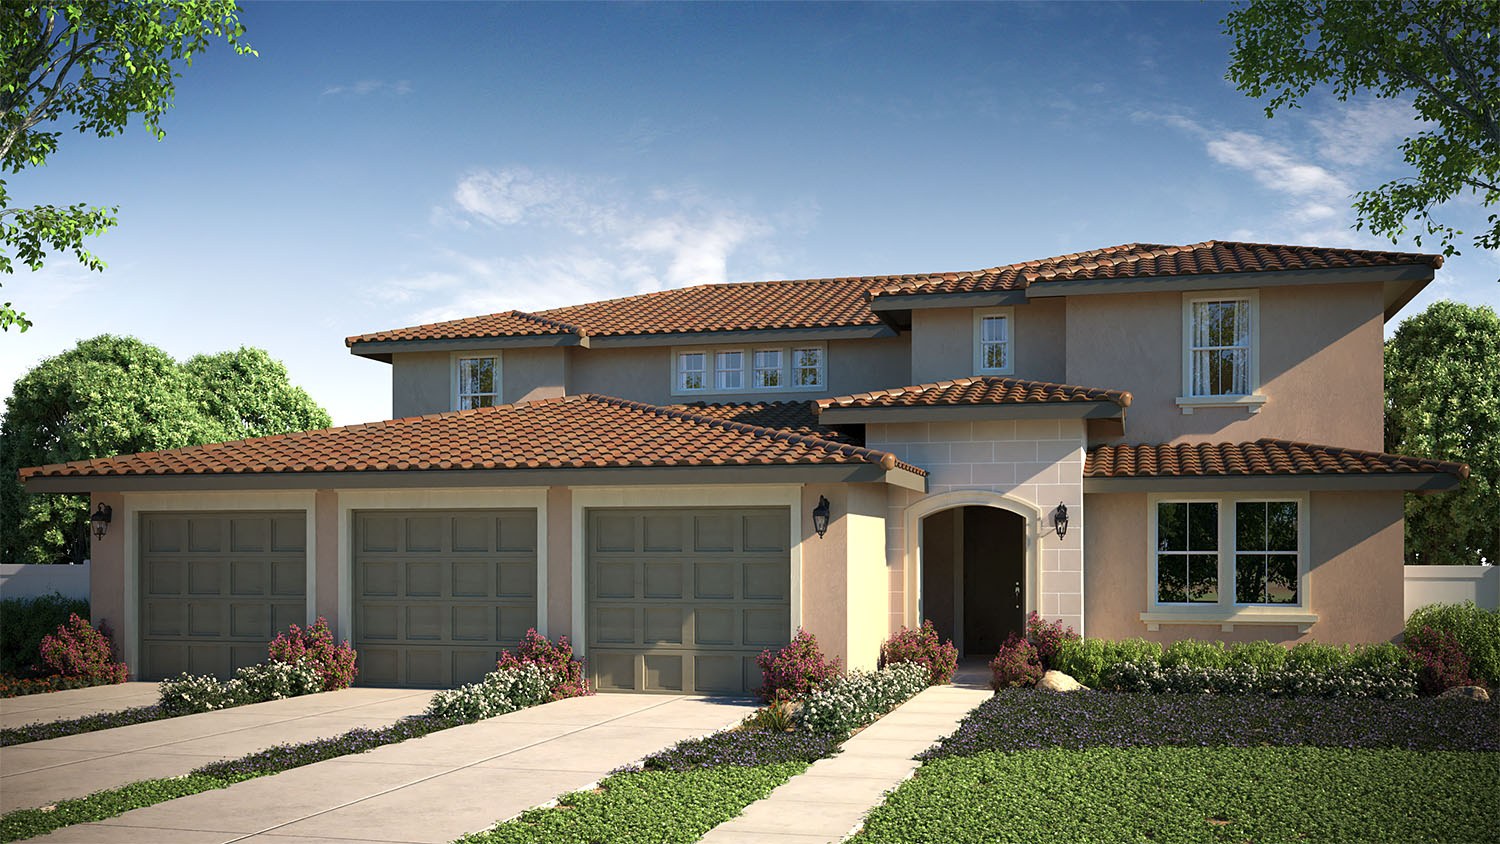 tramonte citrus heights riverside brand new homes city ventures rh cityventures com  houses for rent in riverside with a pool